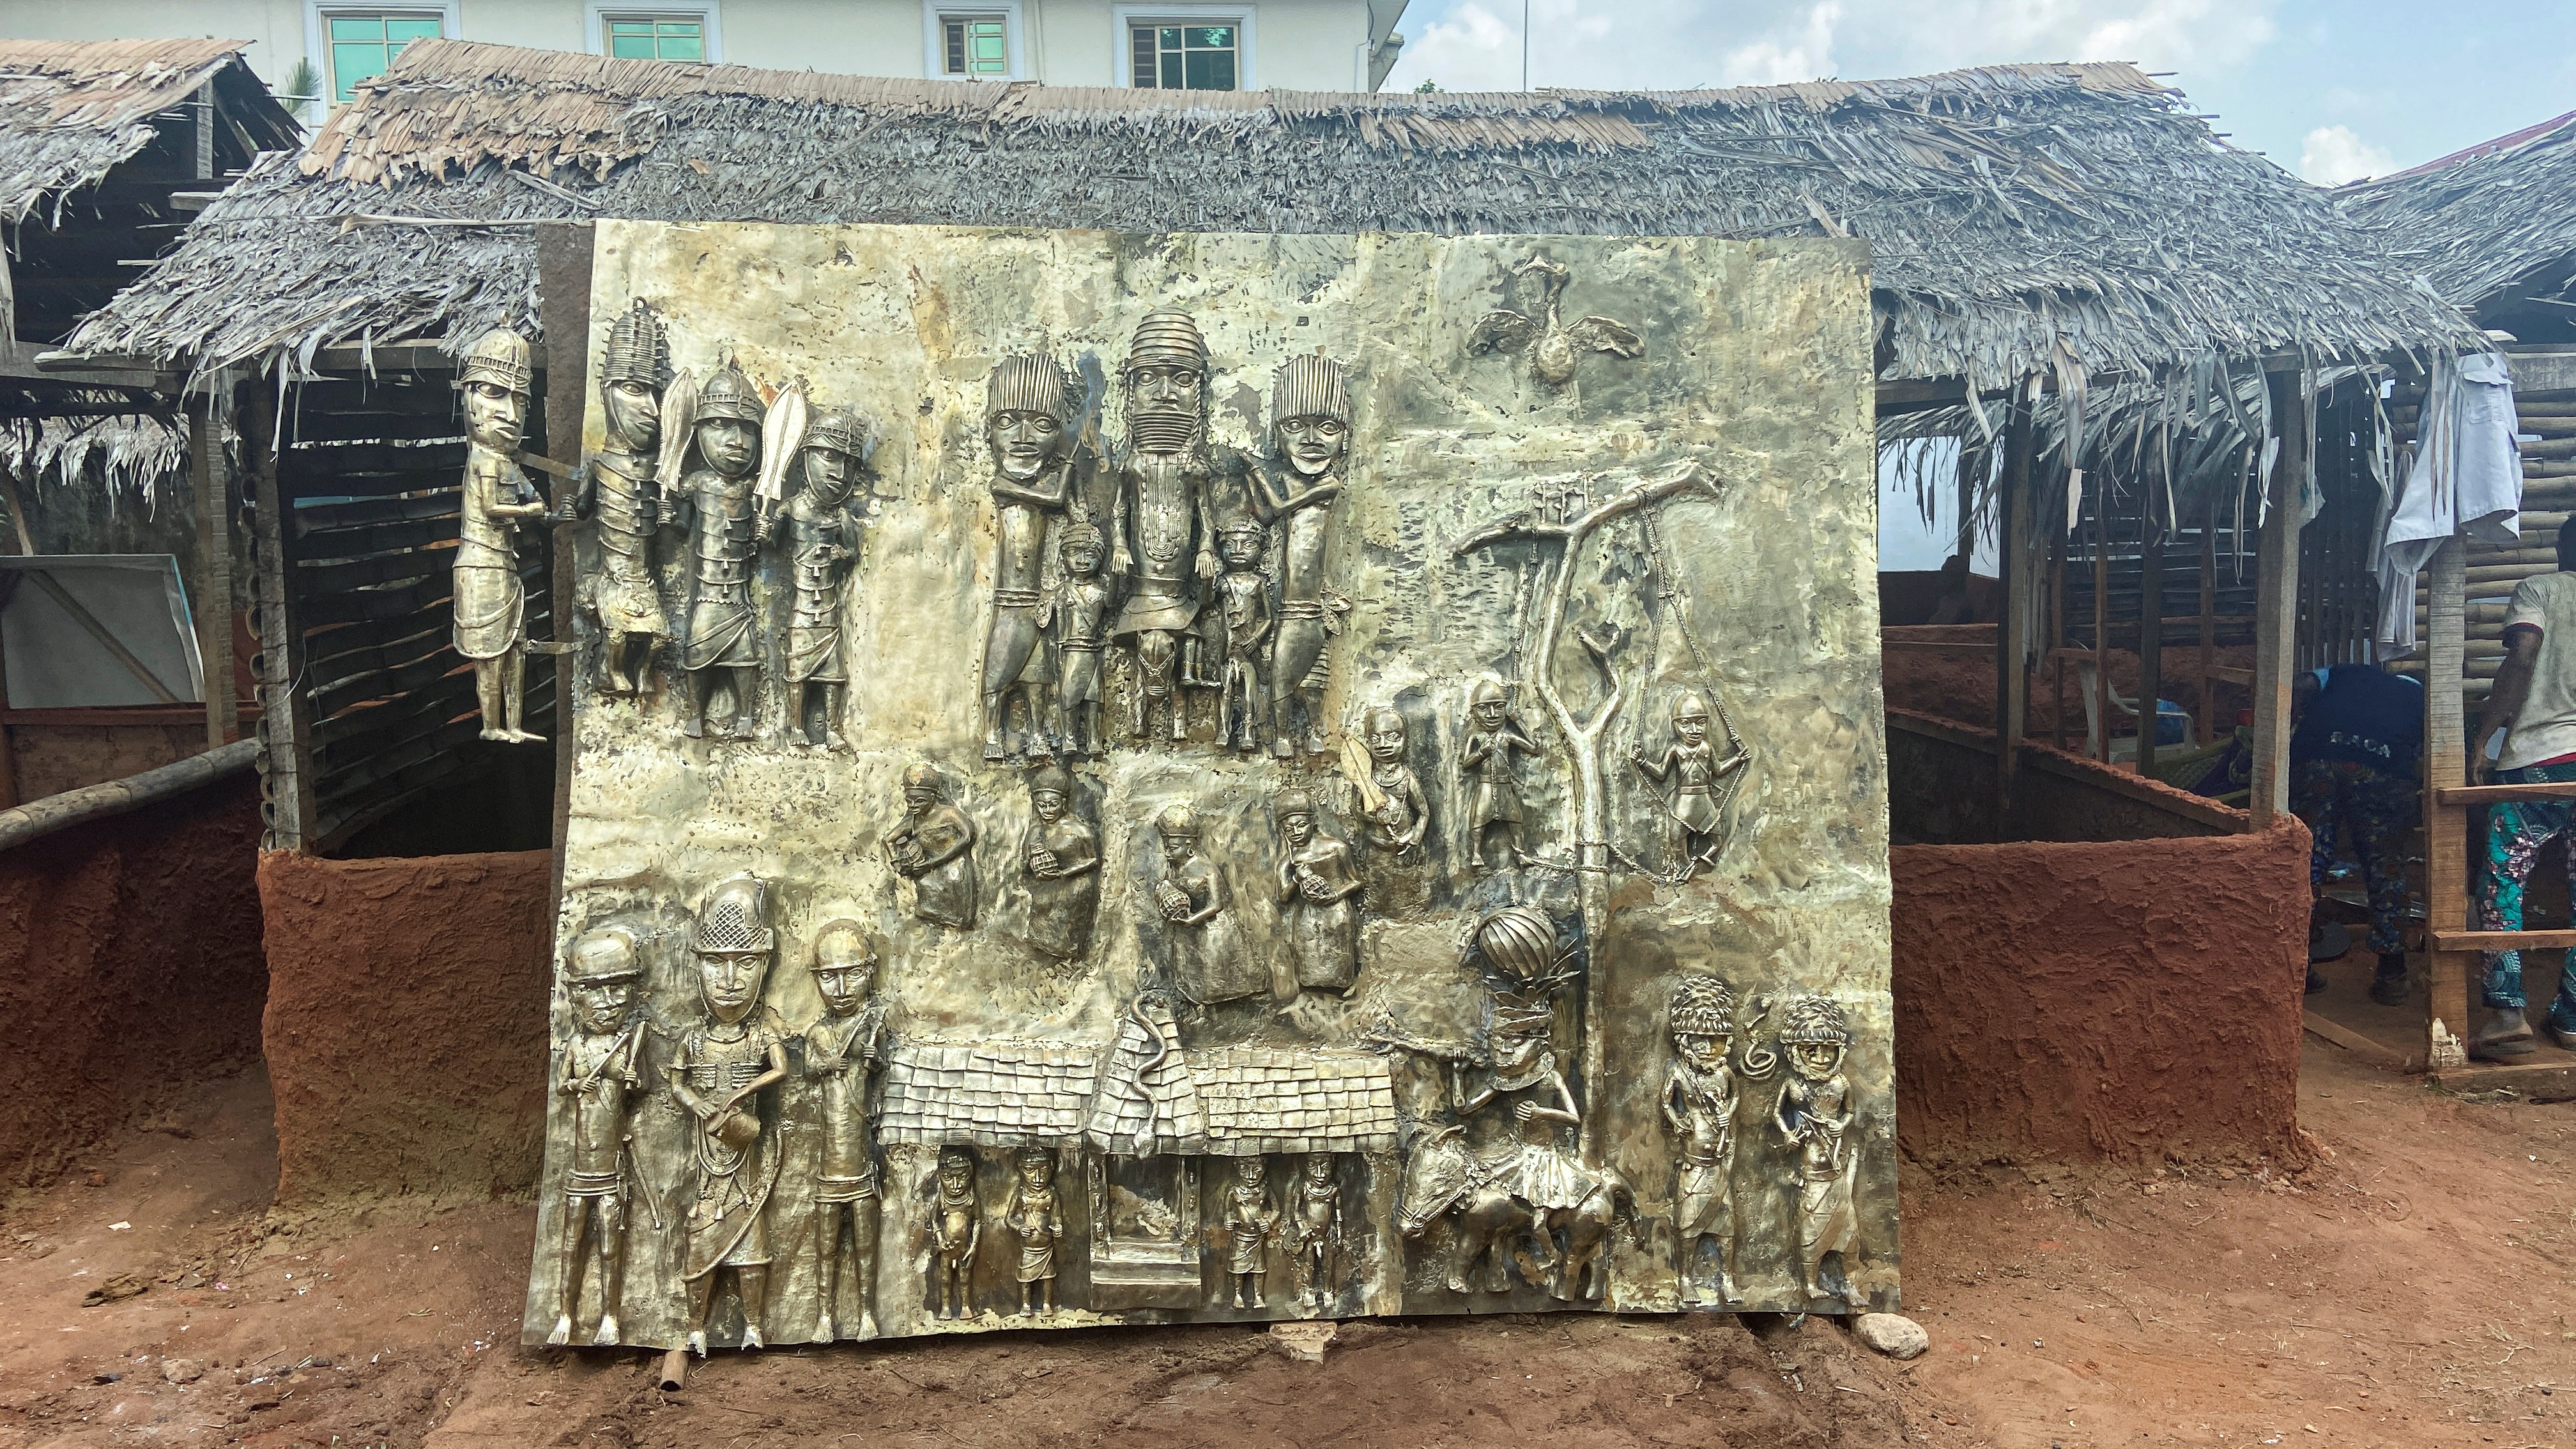 A newly made bronze plaque depicting historical events in West Africa's once mighty Kingdom of Benin, which is being offered as a gift to the British Museum, is seen on display in Benin City, Nigeria, July 31, 2021. REUTERS/Tife Owolabi